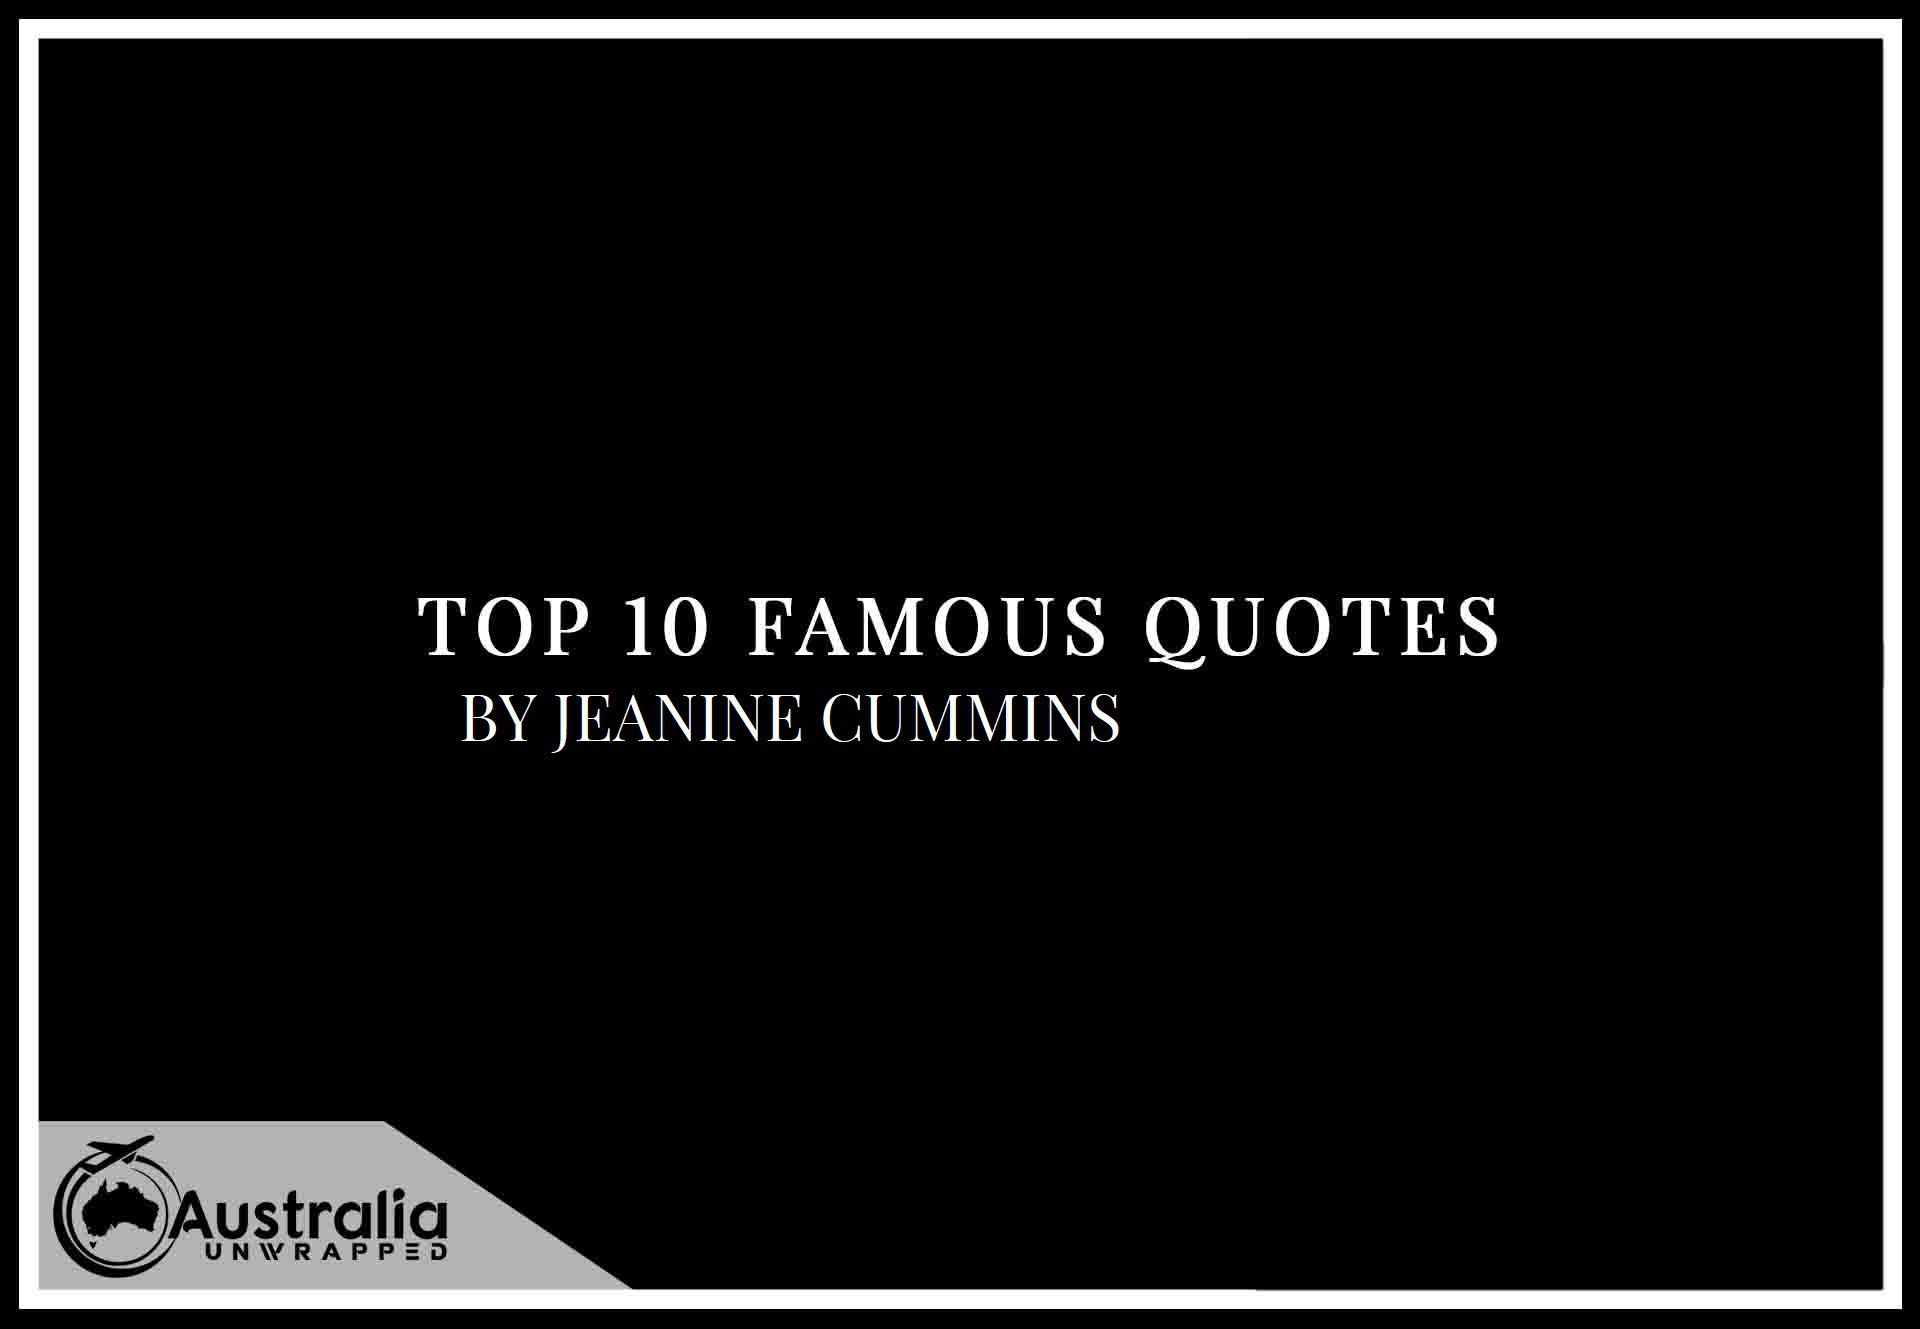 Top 10 Famous Quotes by Author Jeanine Cummins